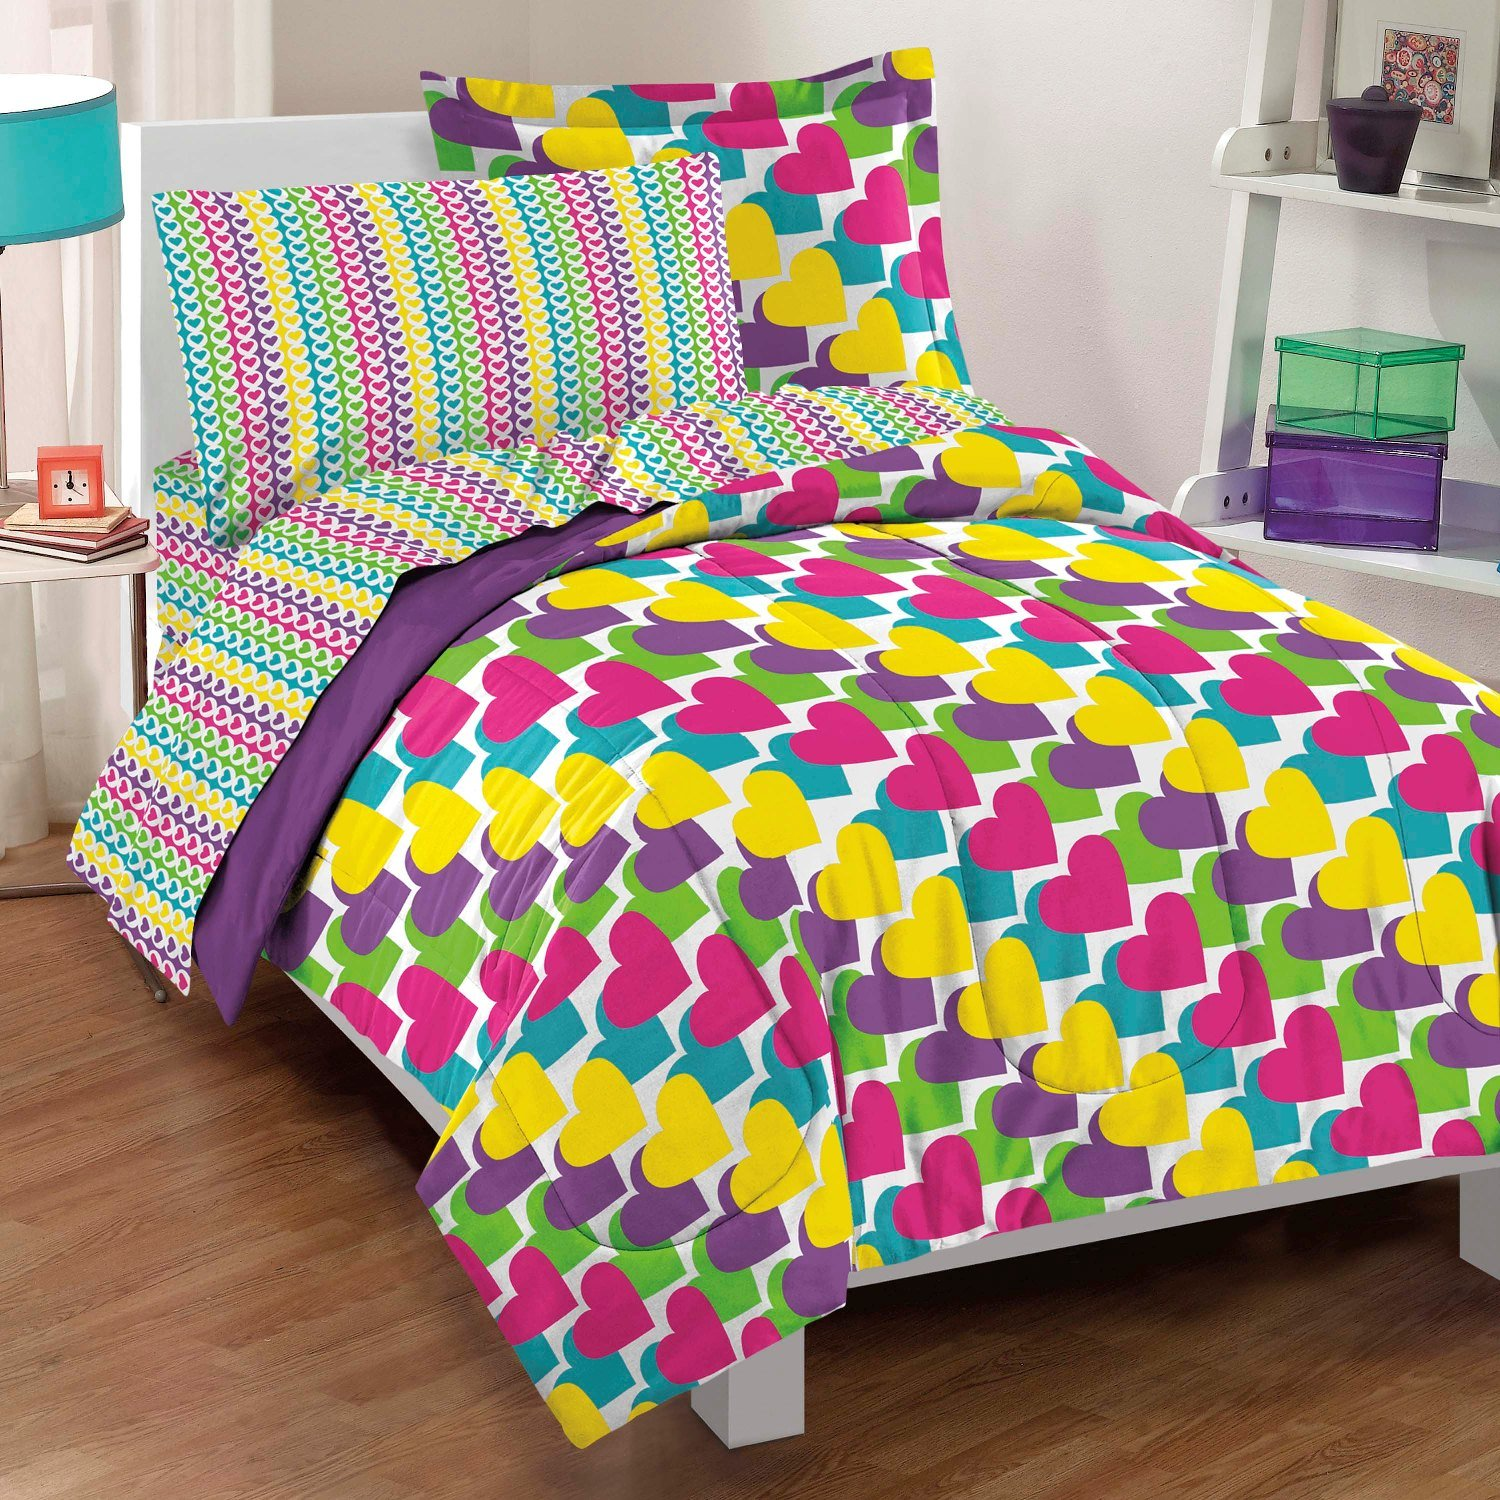 multicolor comforters and quilts sale – ease bedding with style - dream factory casual rainbow hearts comforter set full multicolor